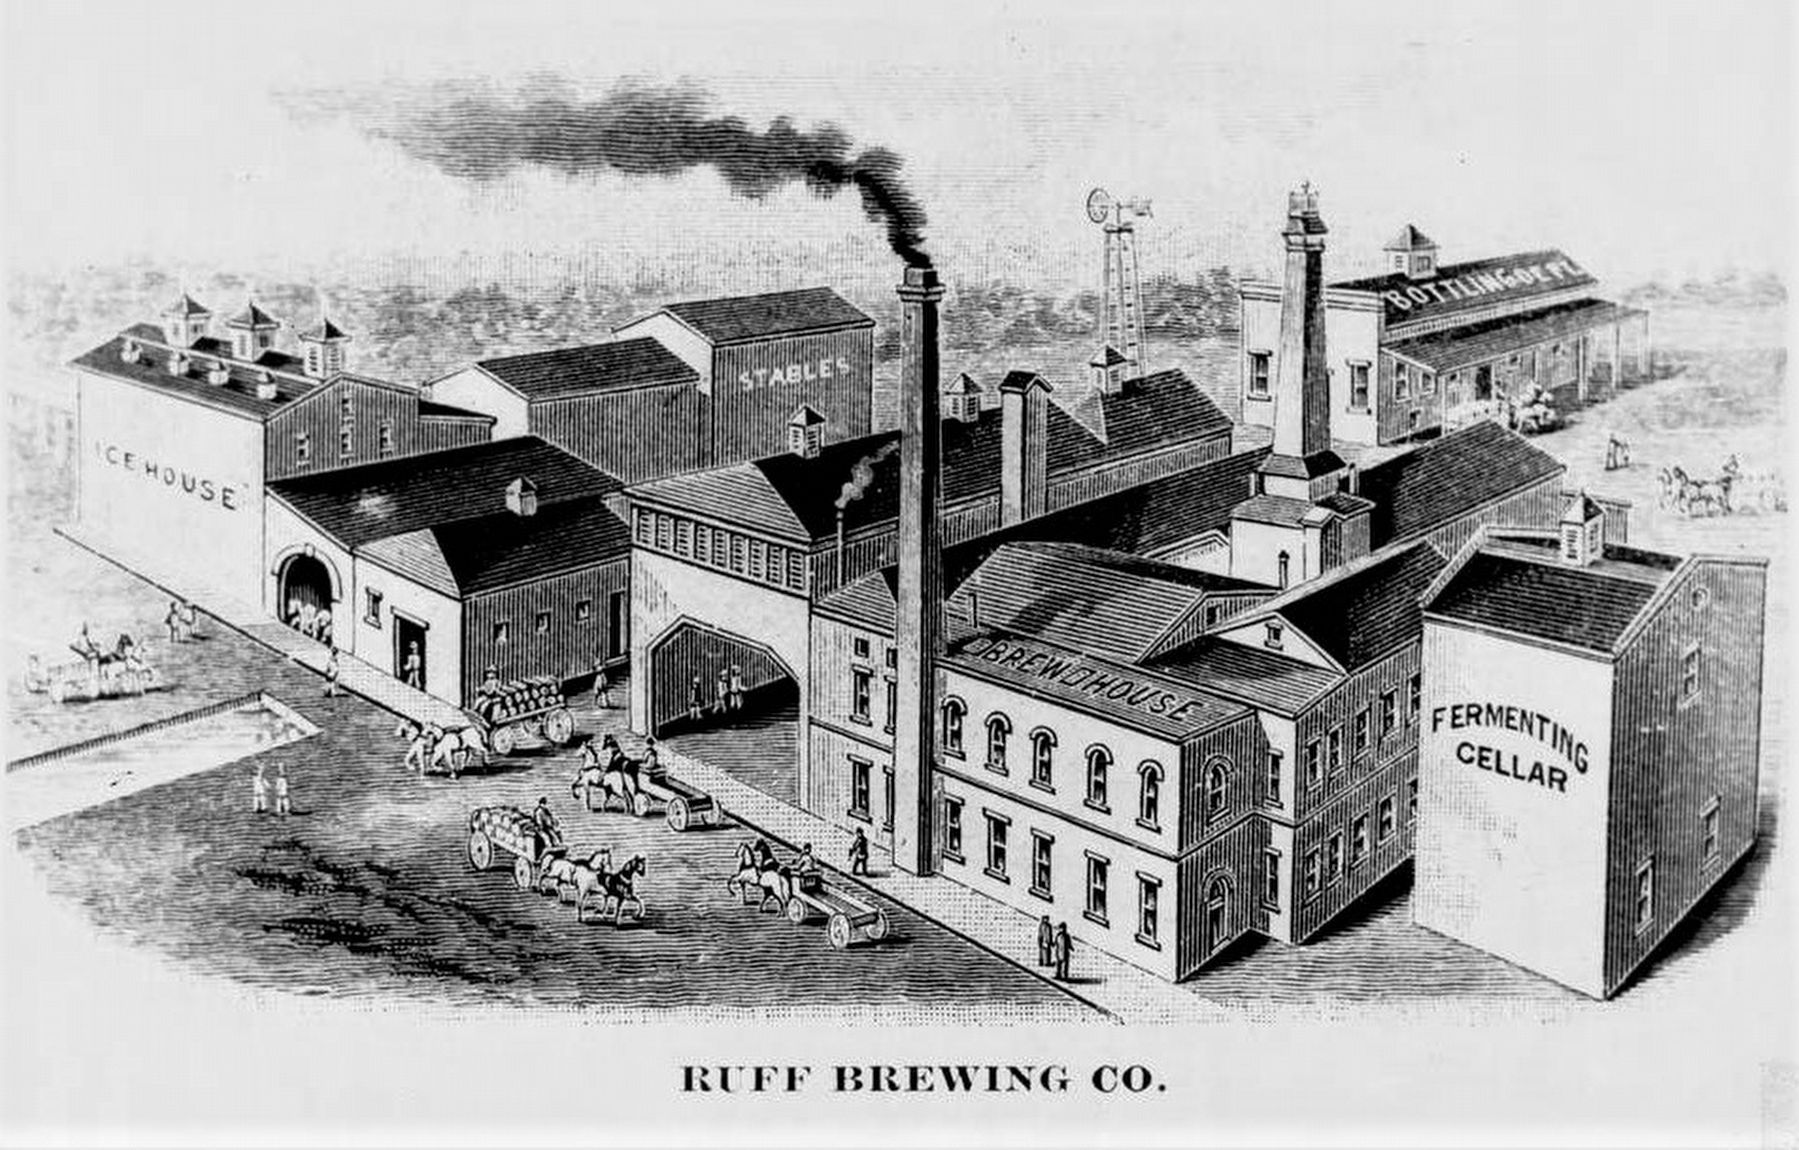 Ruff Brewing Company image. Click for full size.